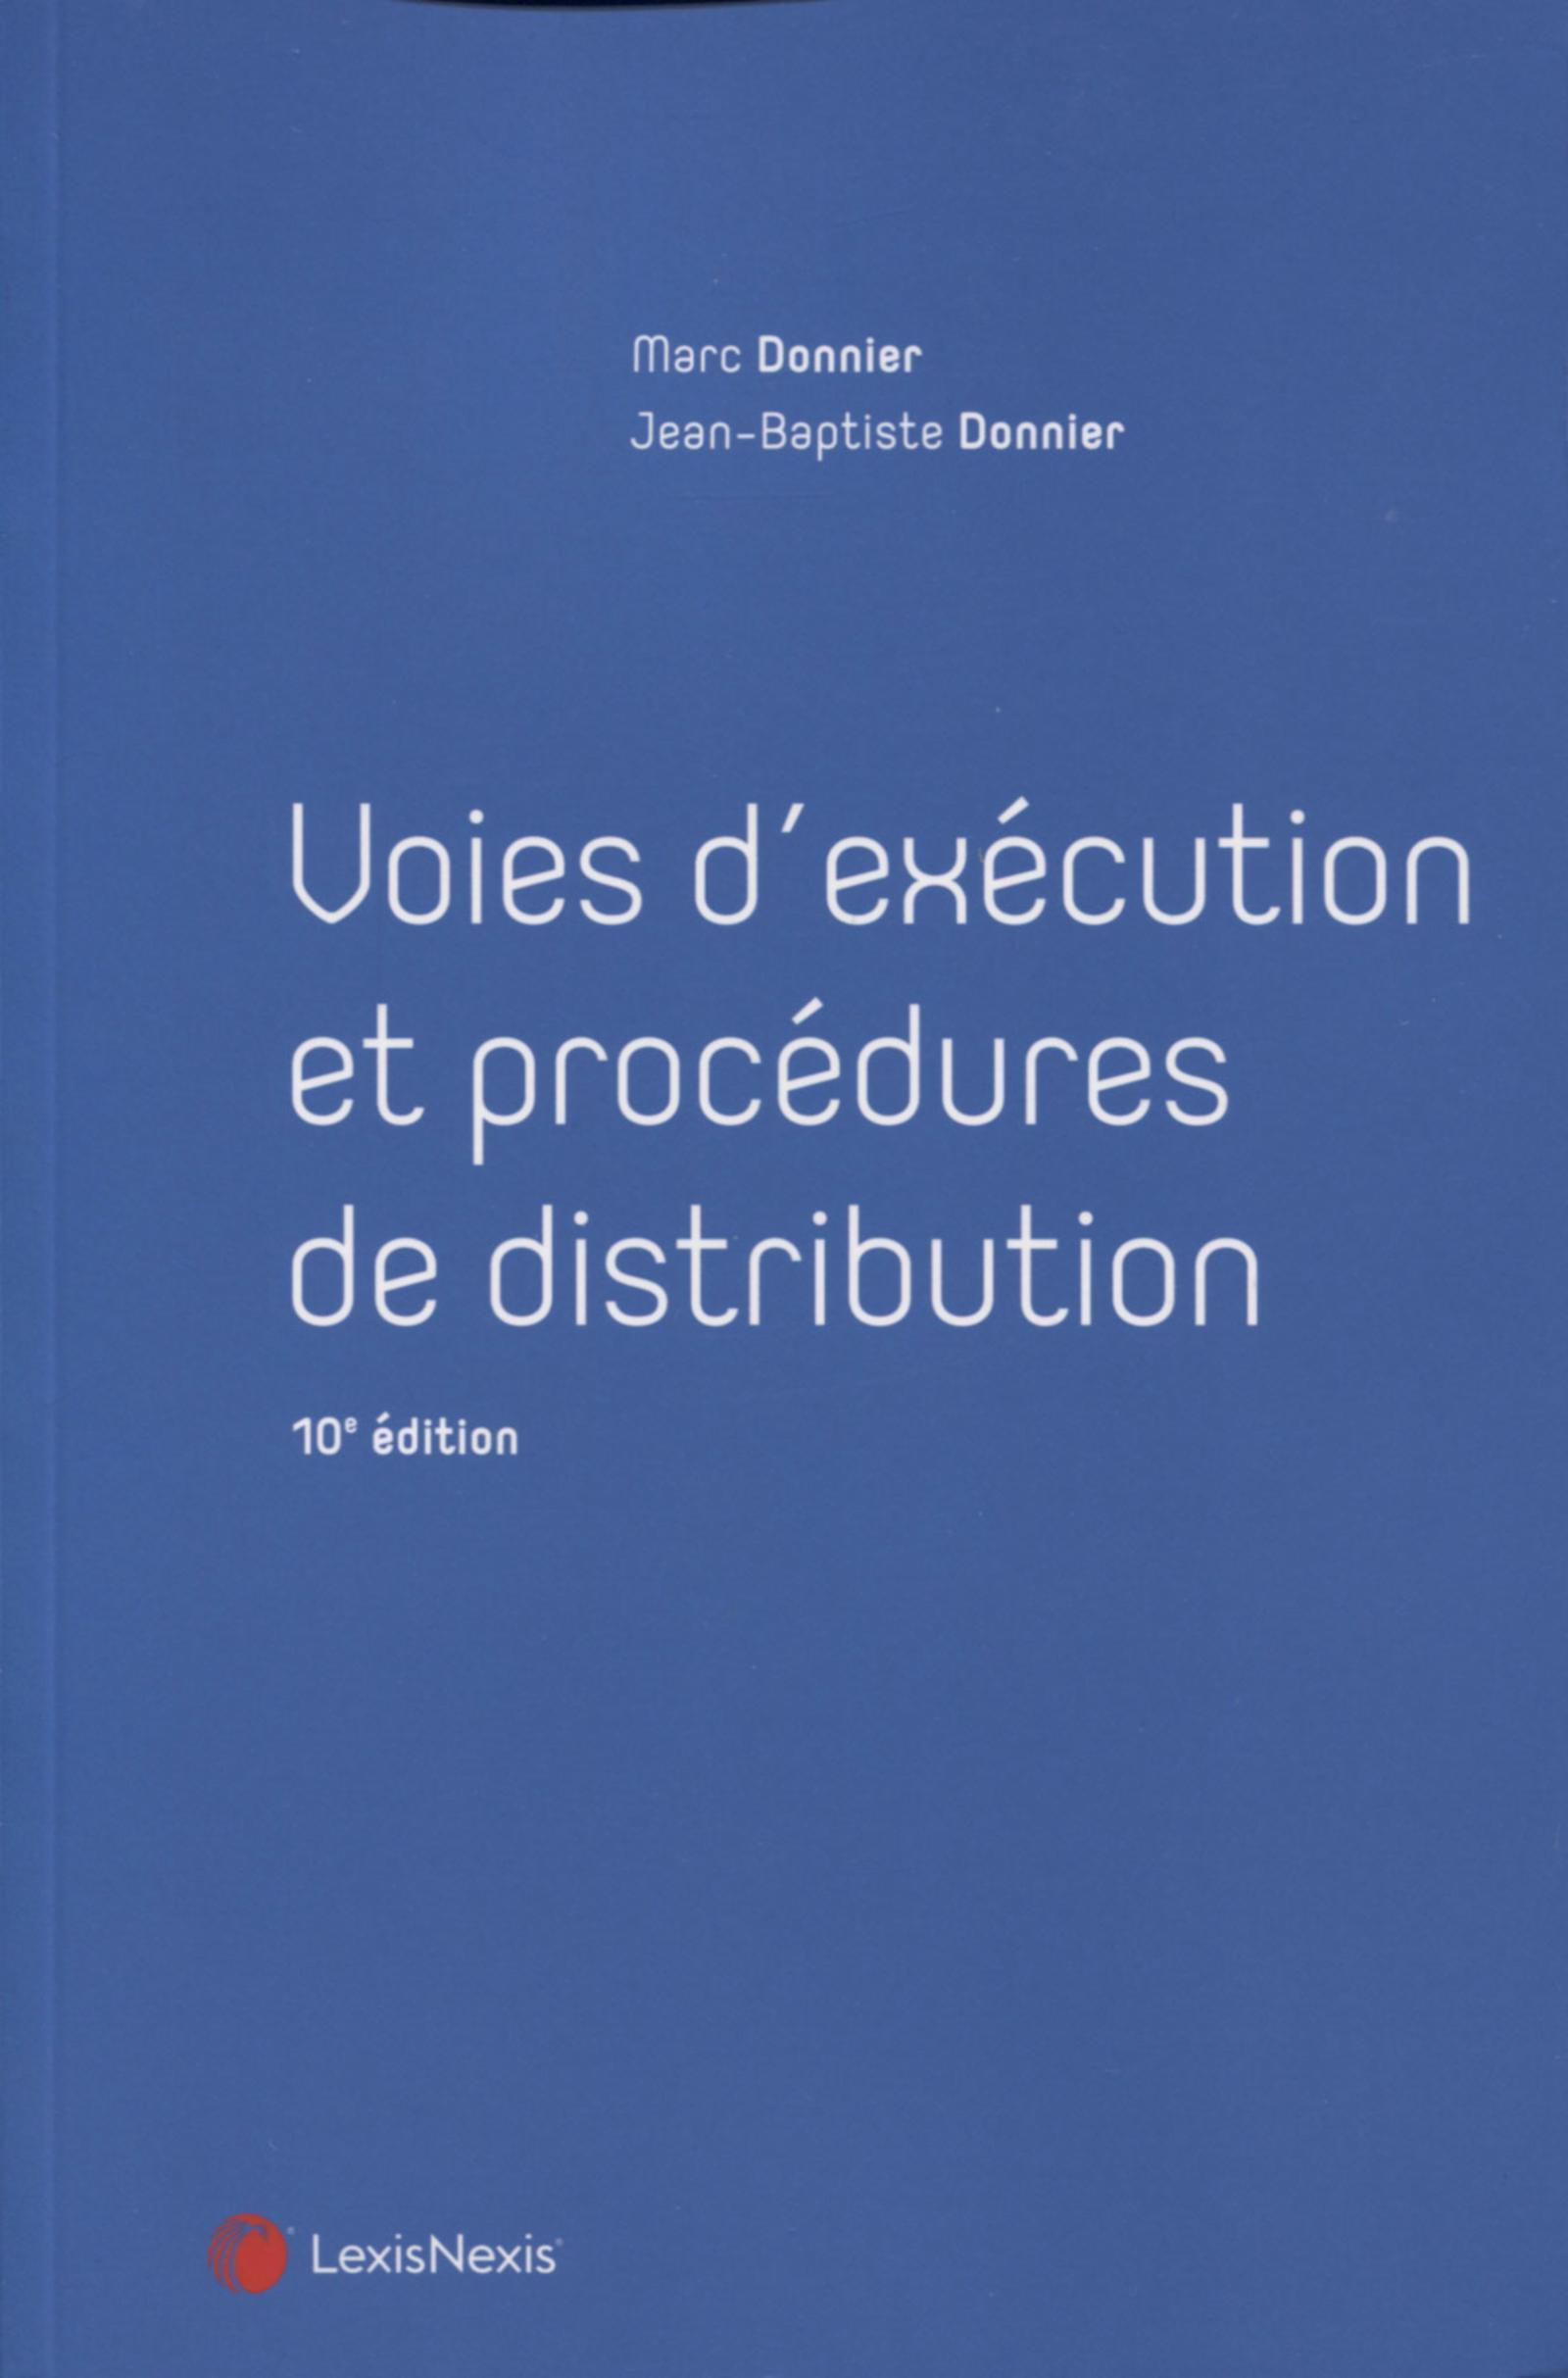 VOIES D'EXECUTION ET PROCEDURES DE DISTRIBUTION